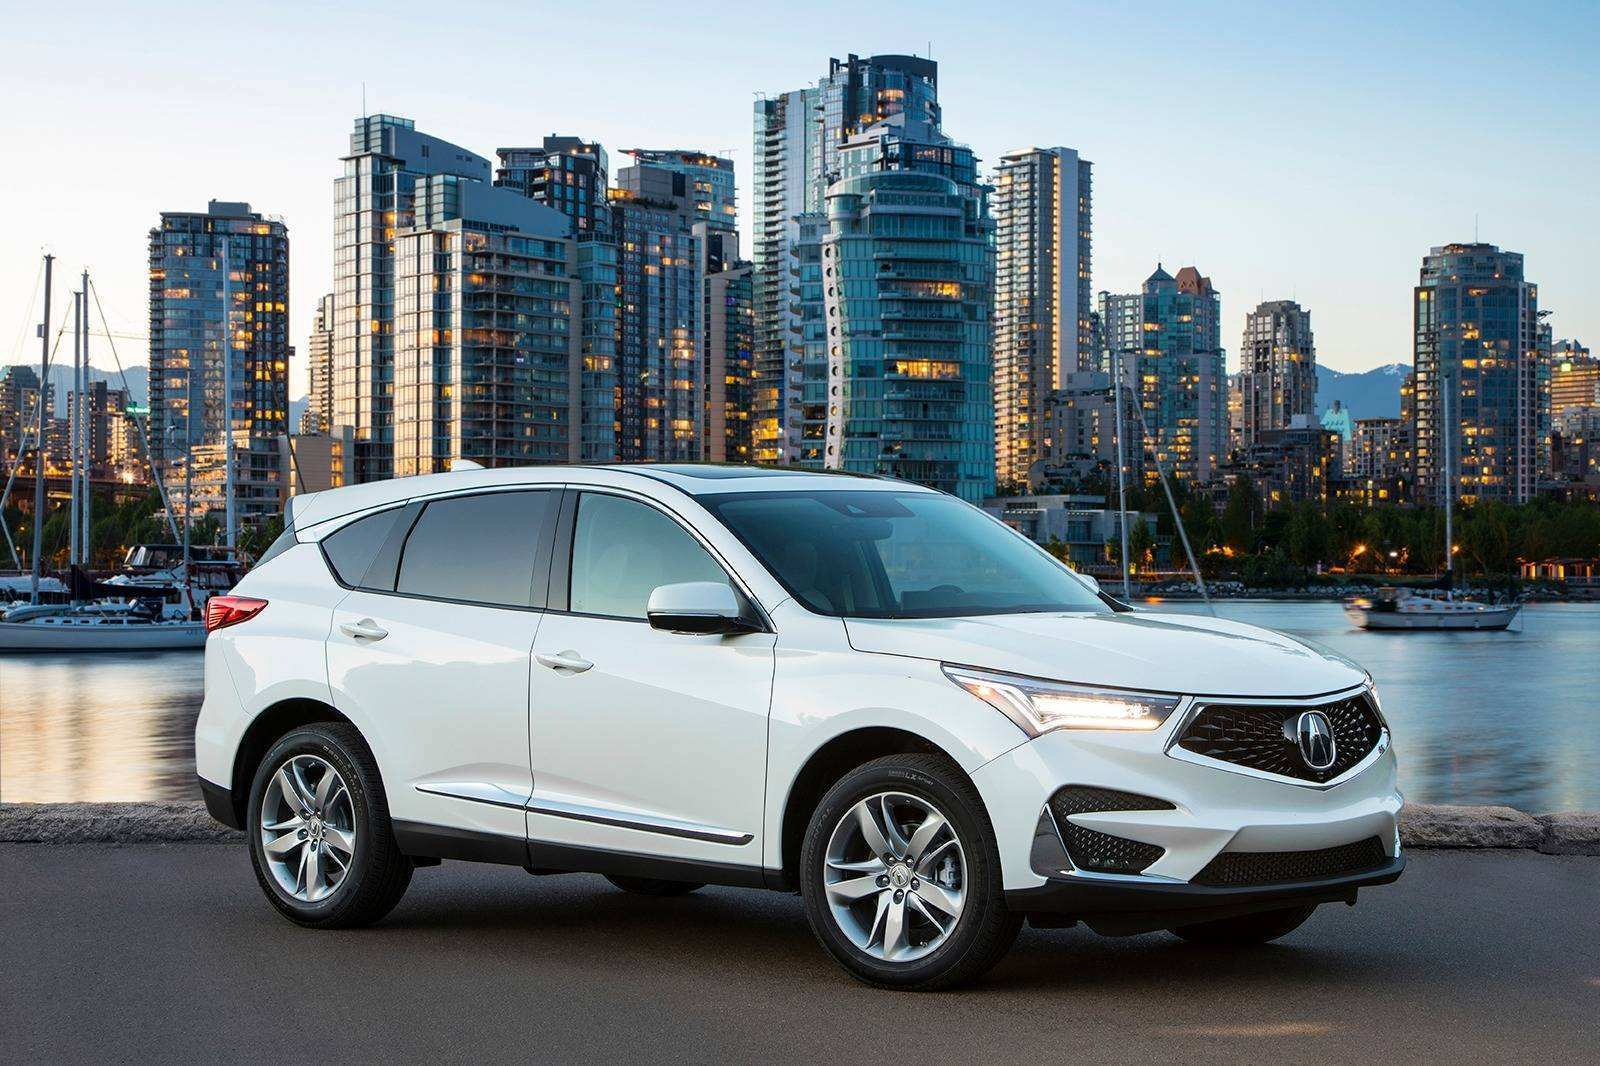 41 Gallery of The 2019 Acura Rdx Edmunds Review And Price Model by The 2019 Acura Rdx Edmunds Review And Price